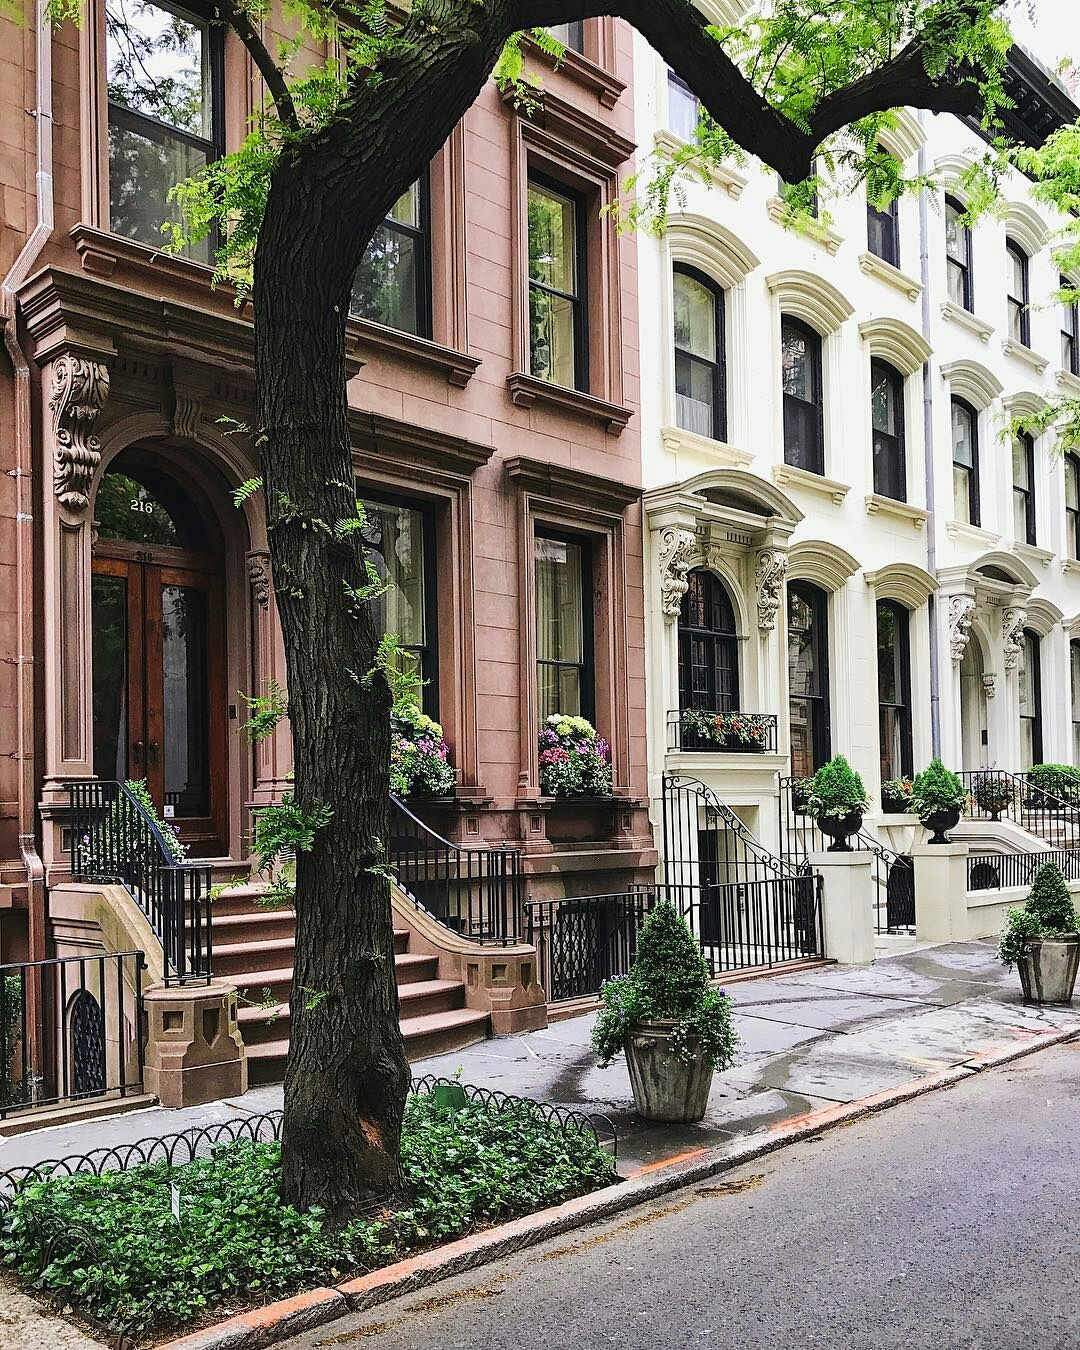 The Best Photos and Videos of New York City | New york ...